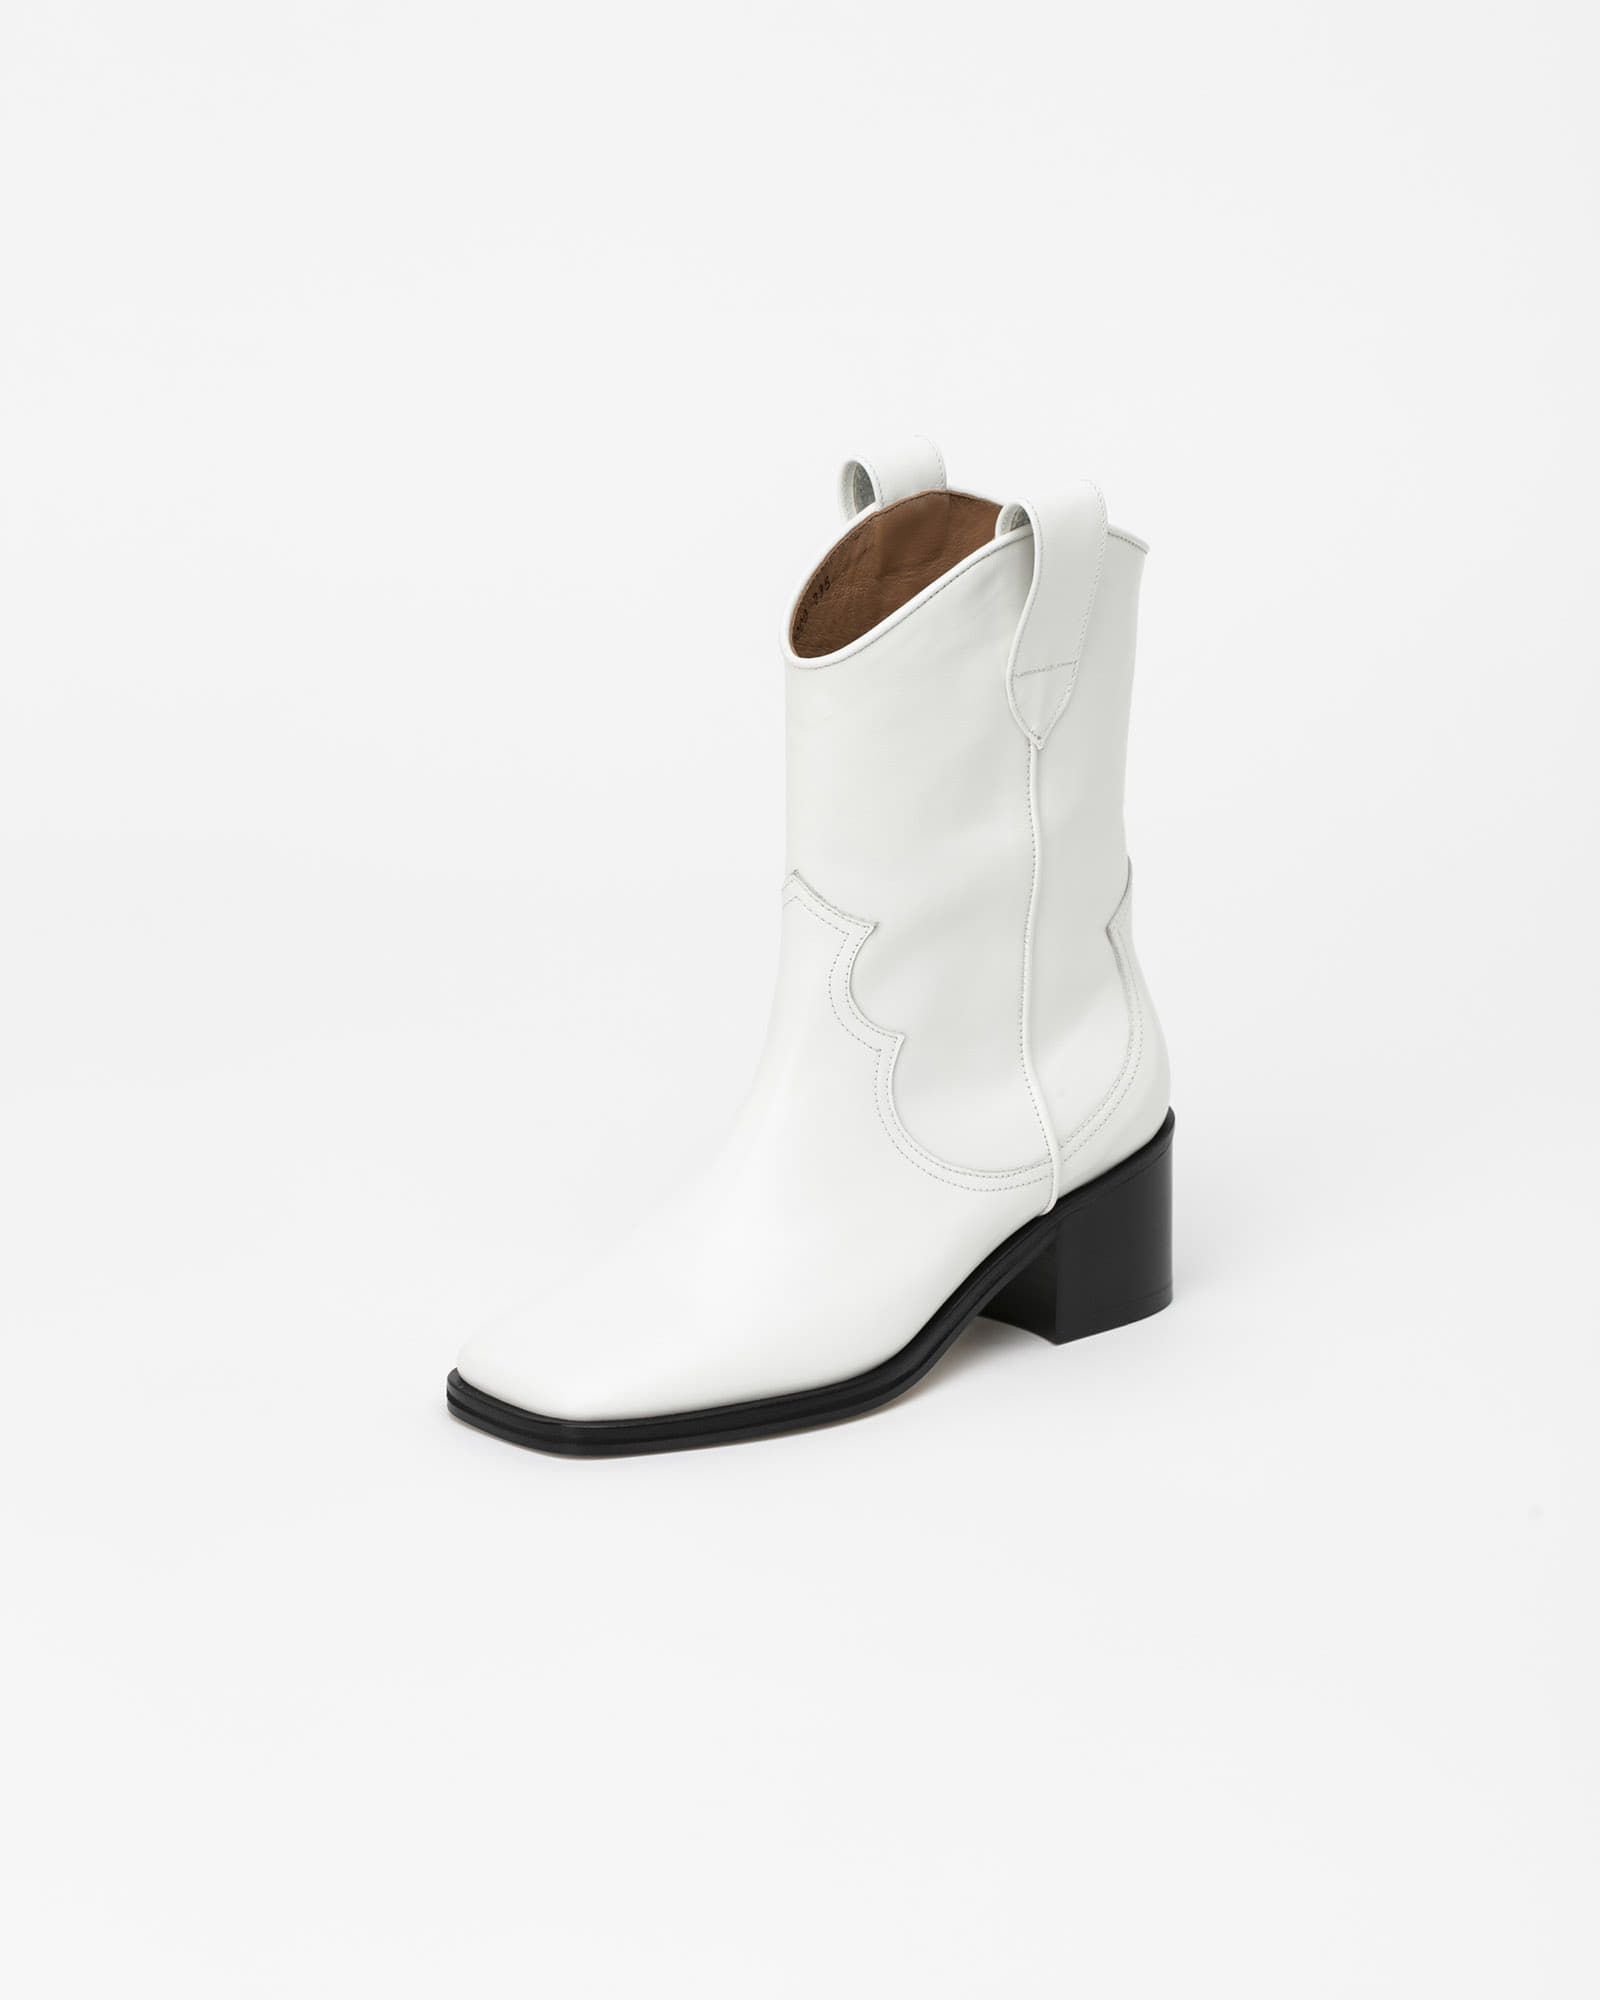 Elceta Square Toe Cowboy Boots in Pure White